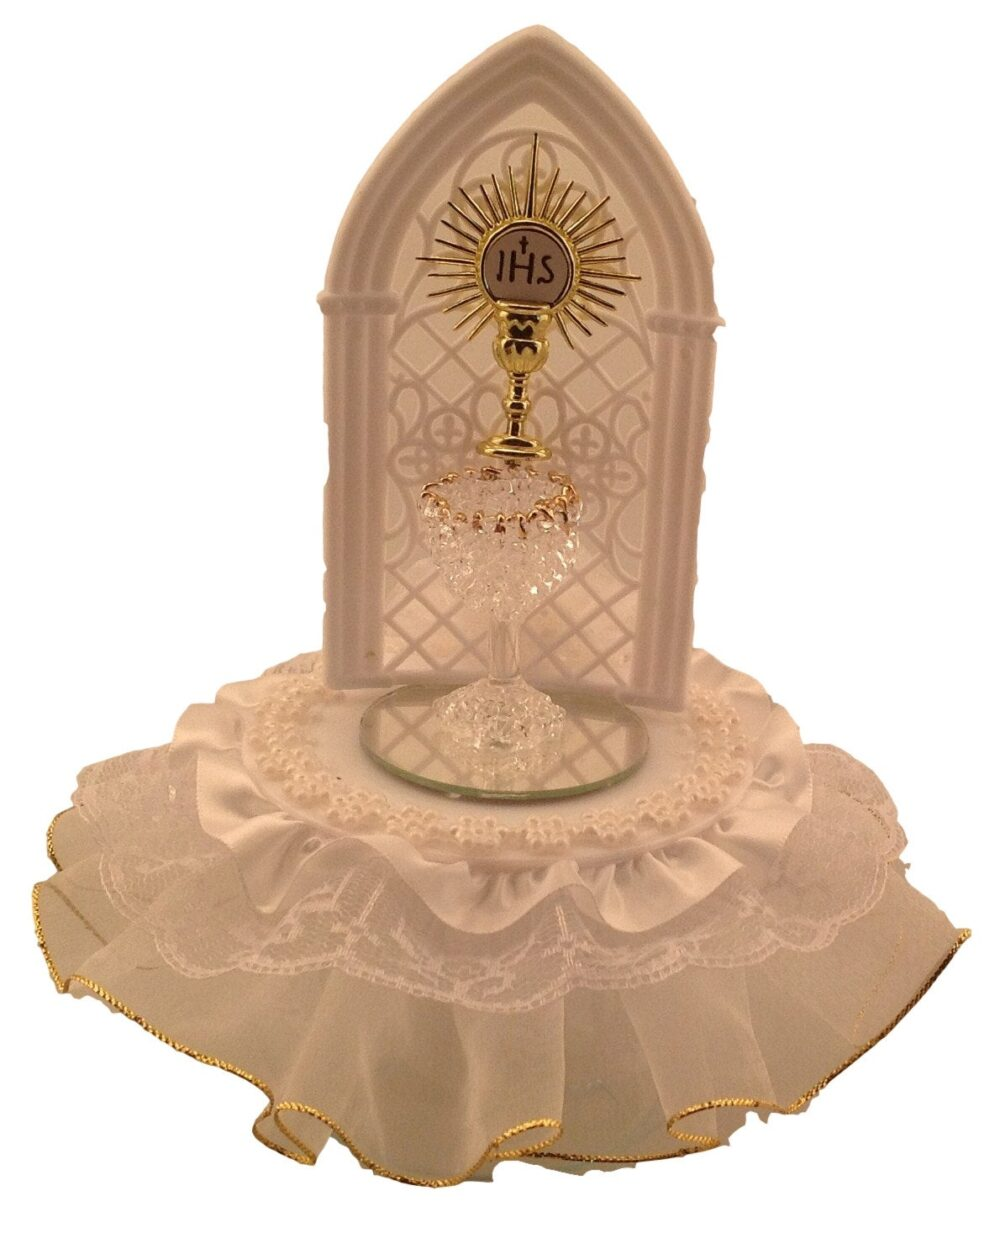 Communion Spun Glass Challis Cake Top With Lace Trim & Silk Flowers All in White